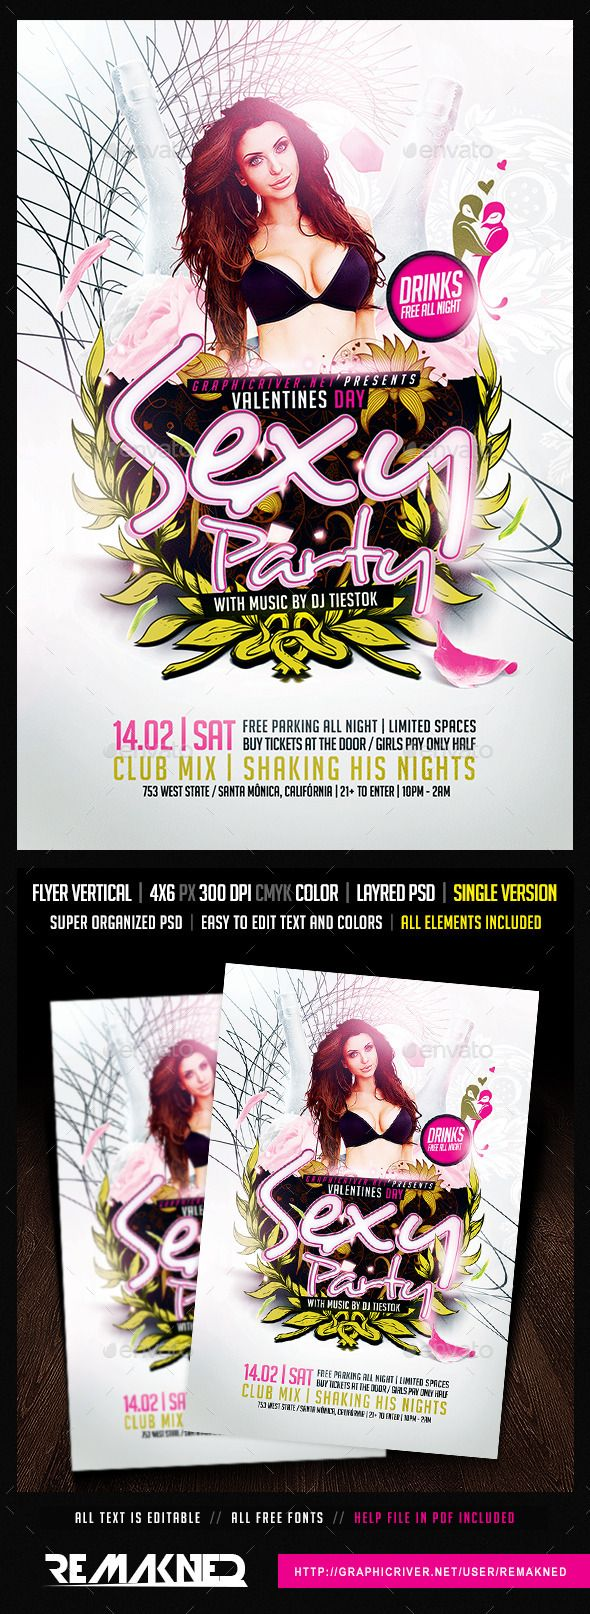 Day Sexy Party | Flyer Template PSD